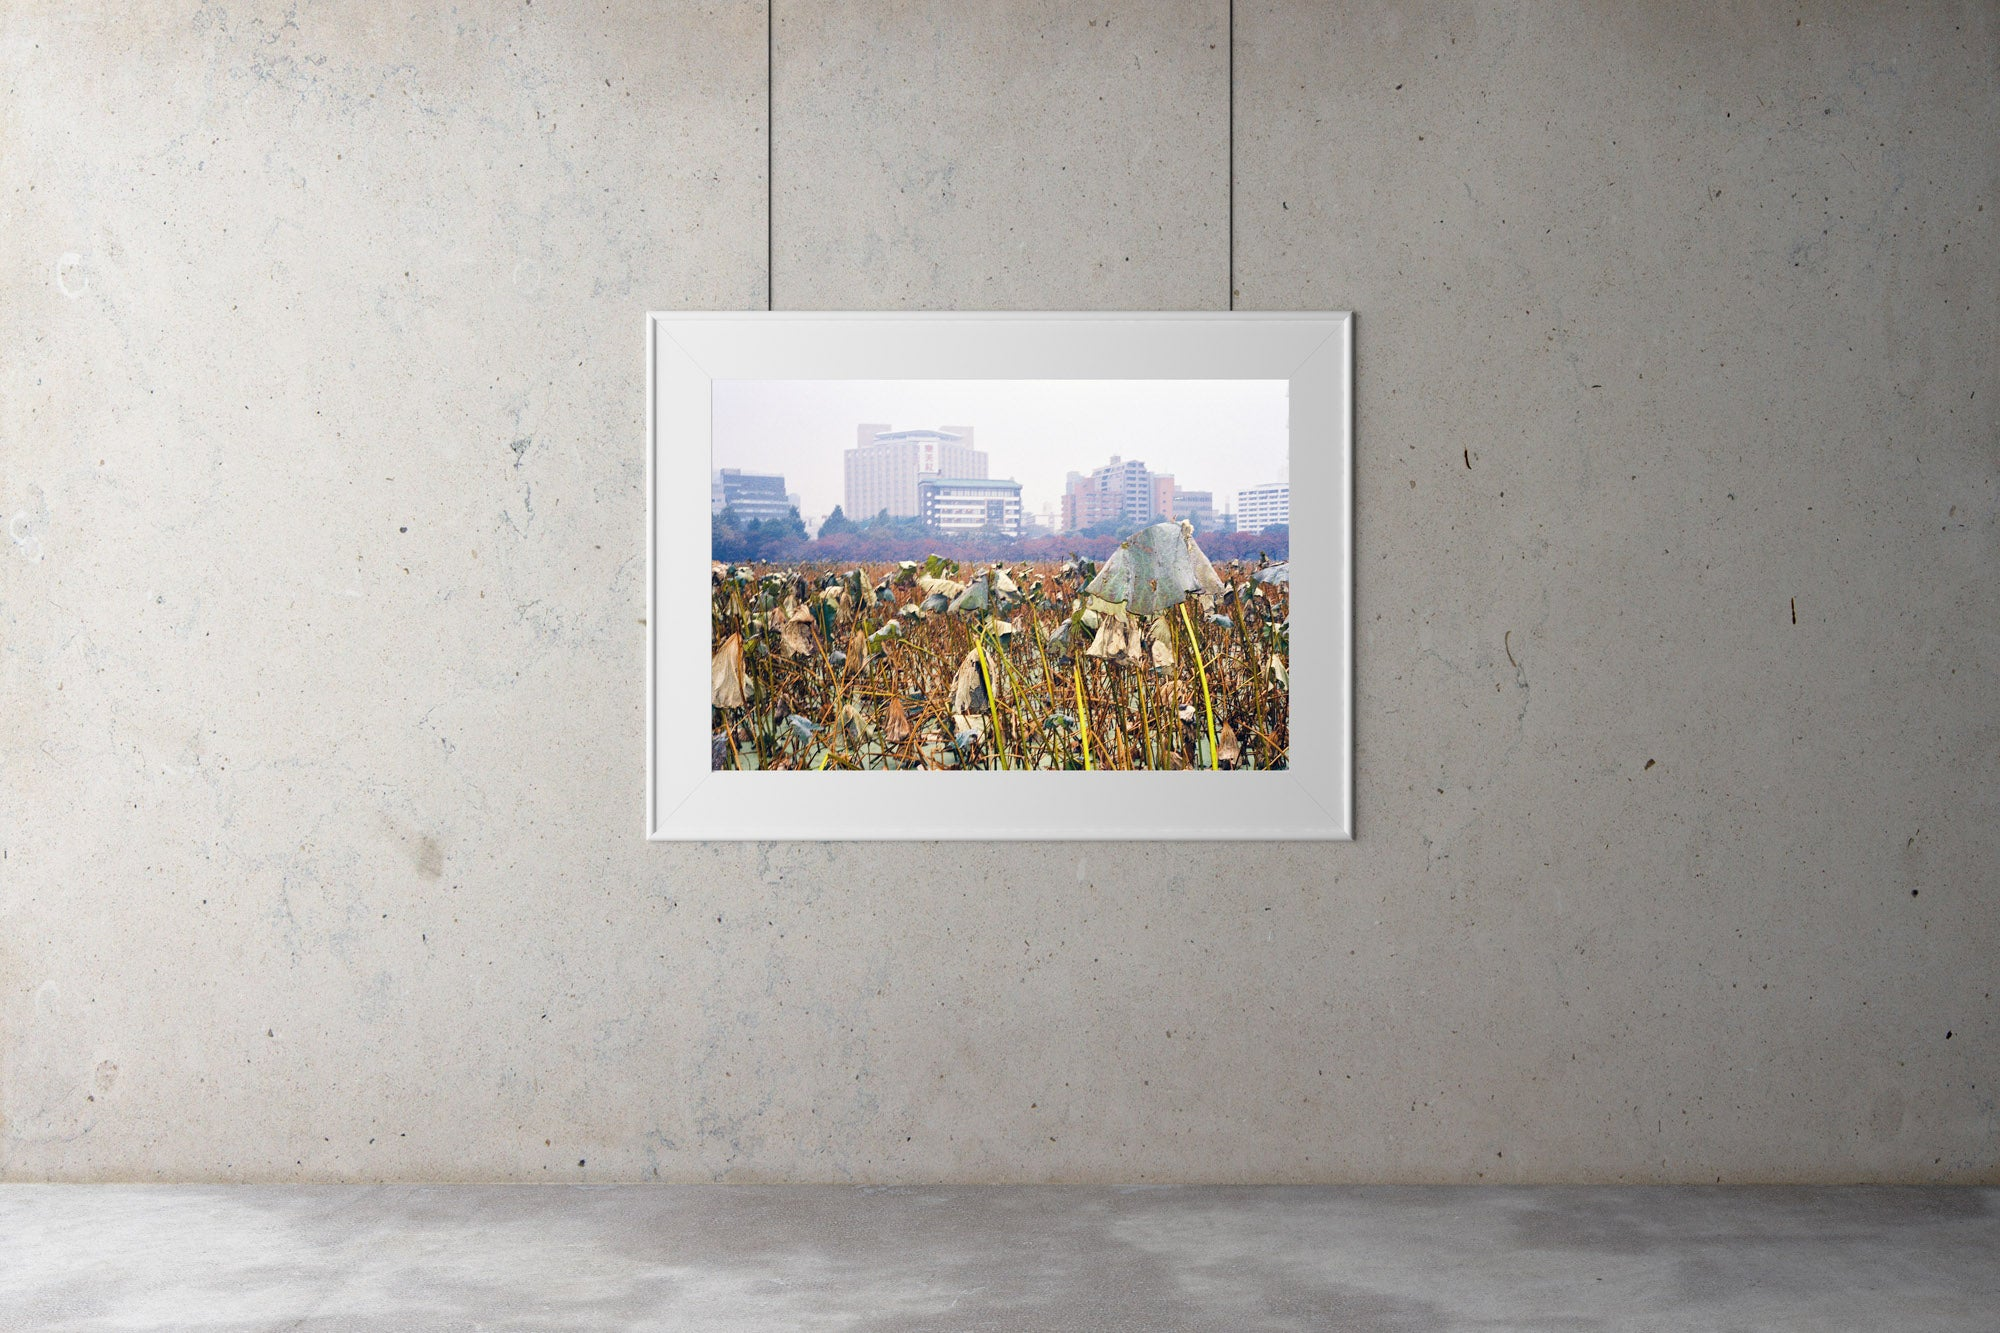 A photograph of a field of Kanjuji plants in Tokyo in winter. There are tall buildings in the background.  Tokyo Japan. Artwork Prints, wall art, Japan, Osaka, Photographic prints,, Framed artwork,  Posters  Photography Photography for sale, Film photography, Vintage photo style,  Interior design, Film photography, Pictures framed, artwork, travel photography, 35mm film, urban photography, street photography for sale,